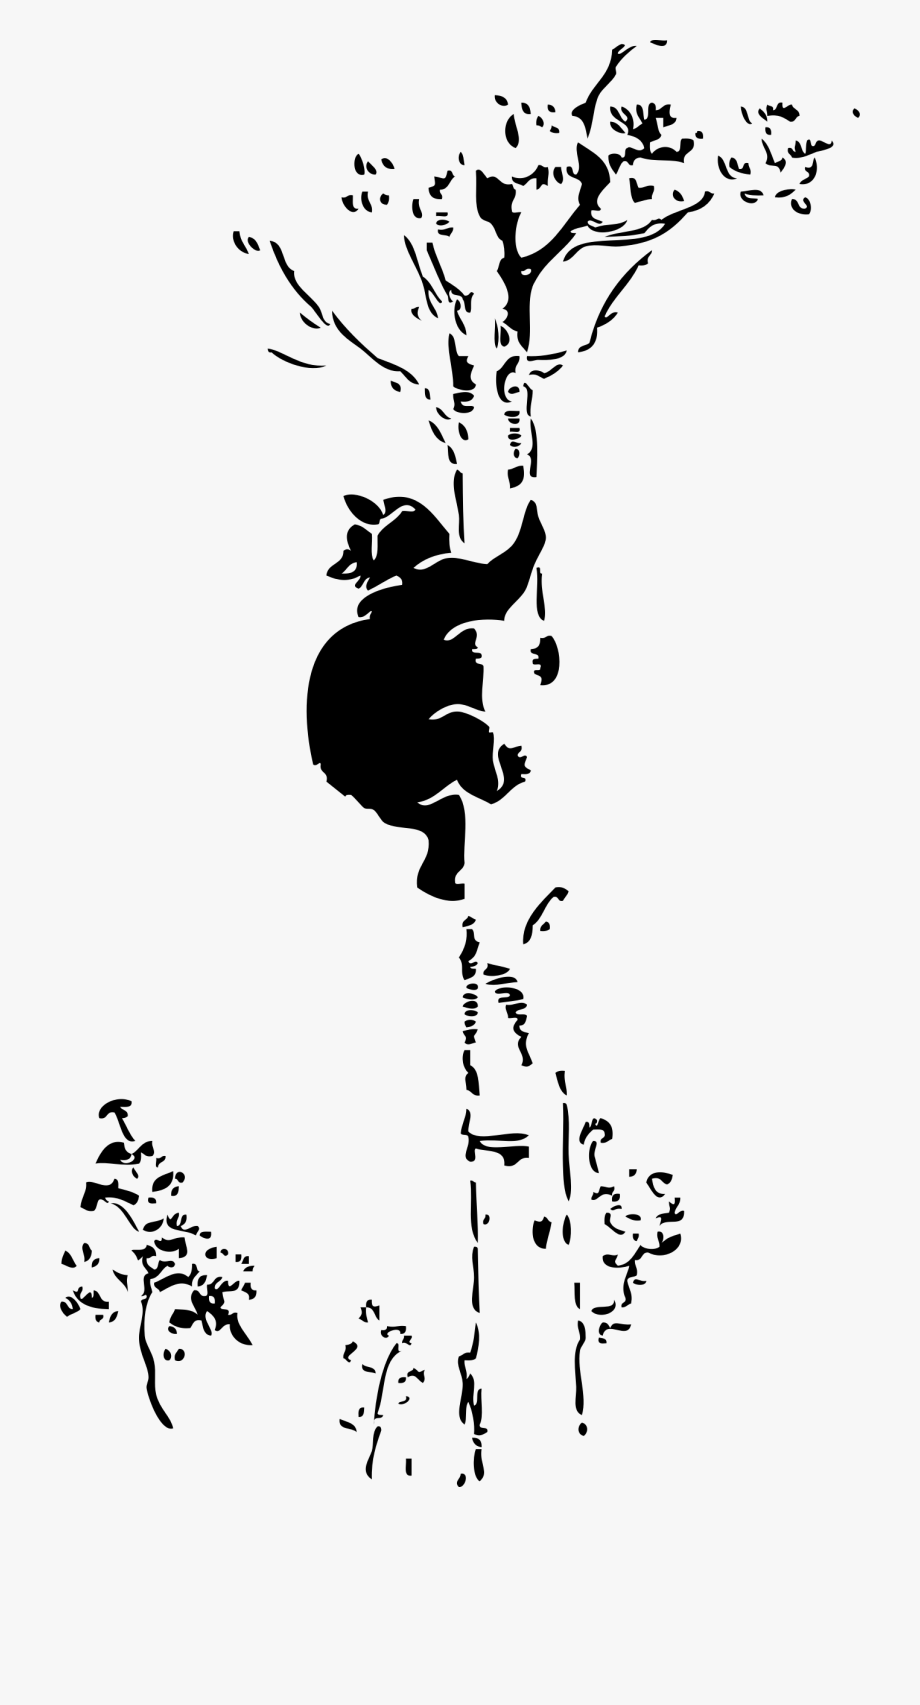 Bear in a tree clipart clipart stock Cat In Tree Clip Art - Bear Climbing Tree Silhouette #526954 - Free ... clipart stock